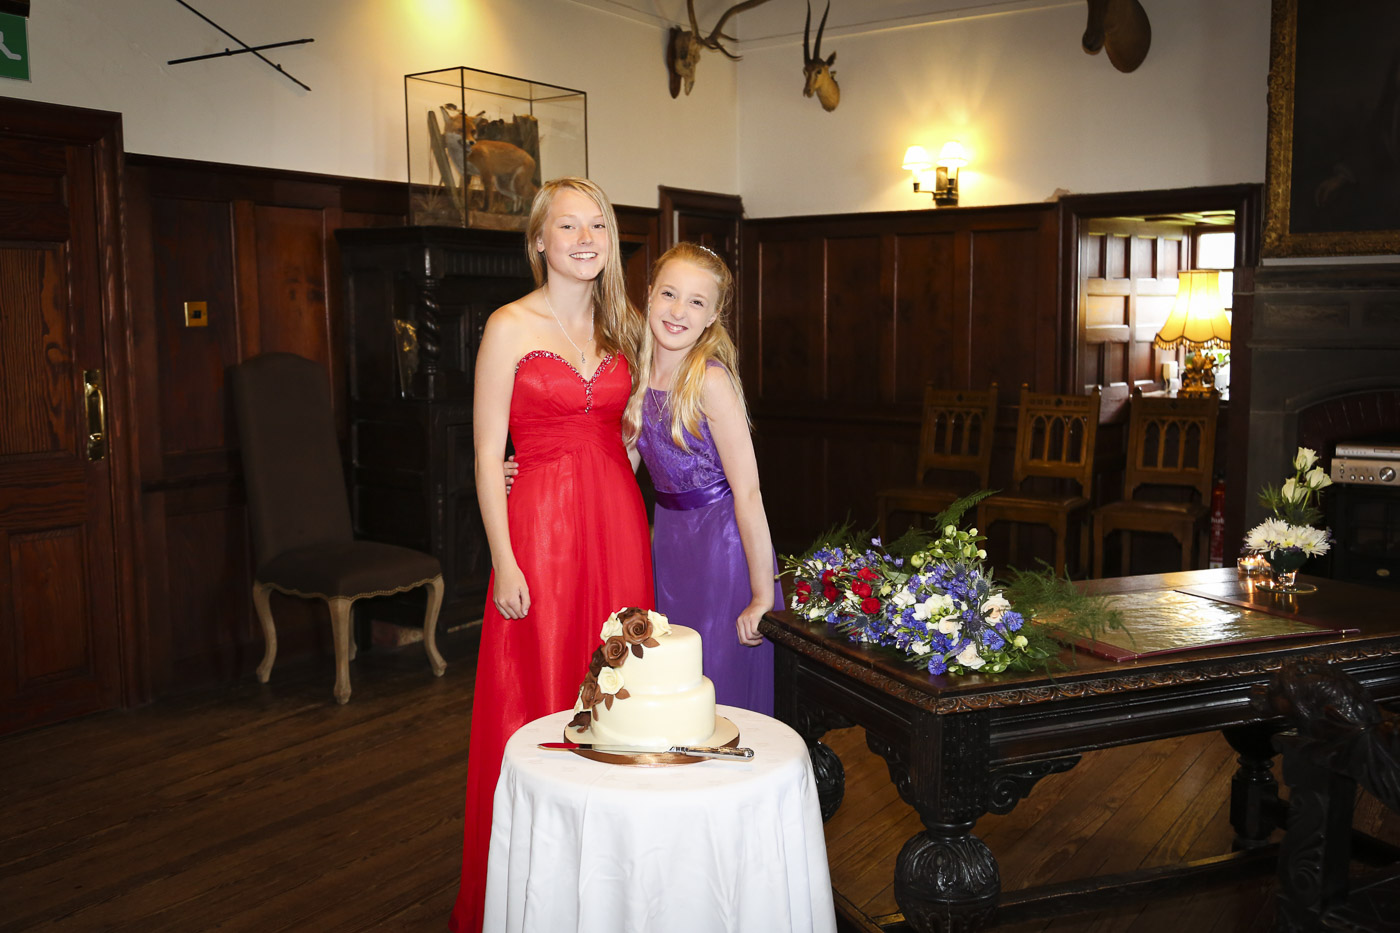 wedding-photography-at-barcaldine-castle-argyll-3104